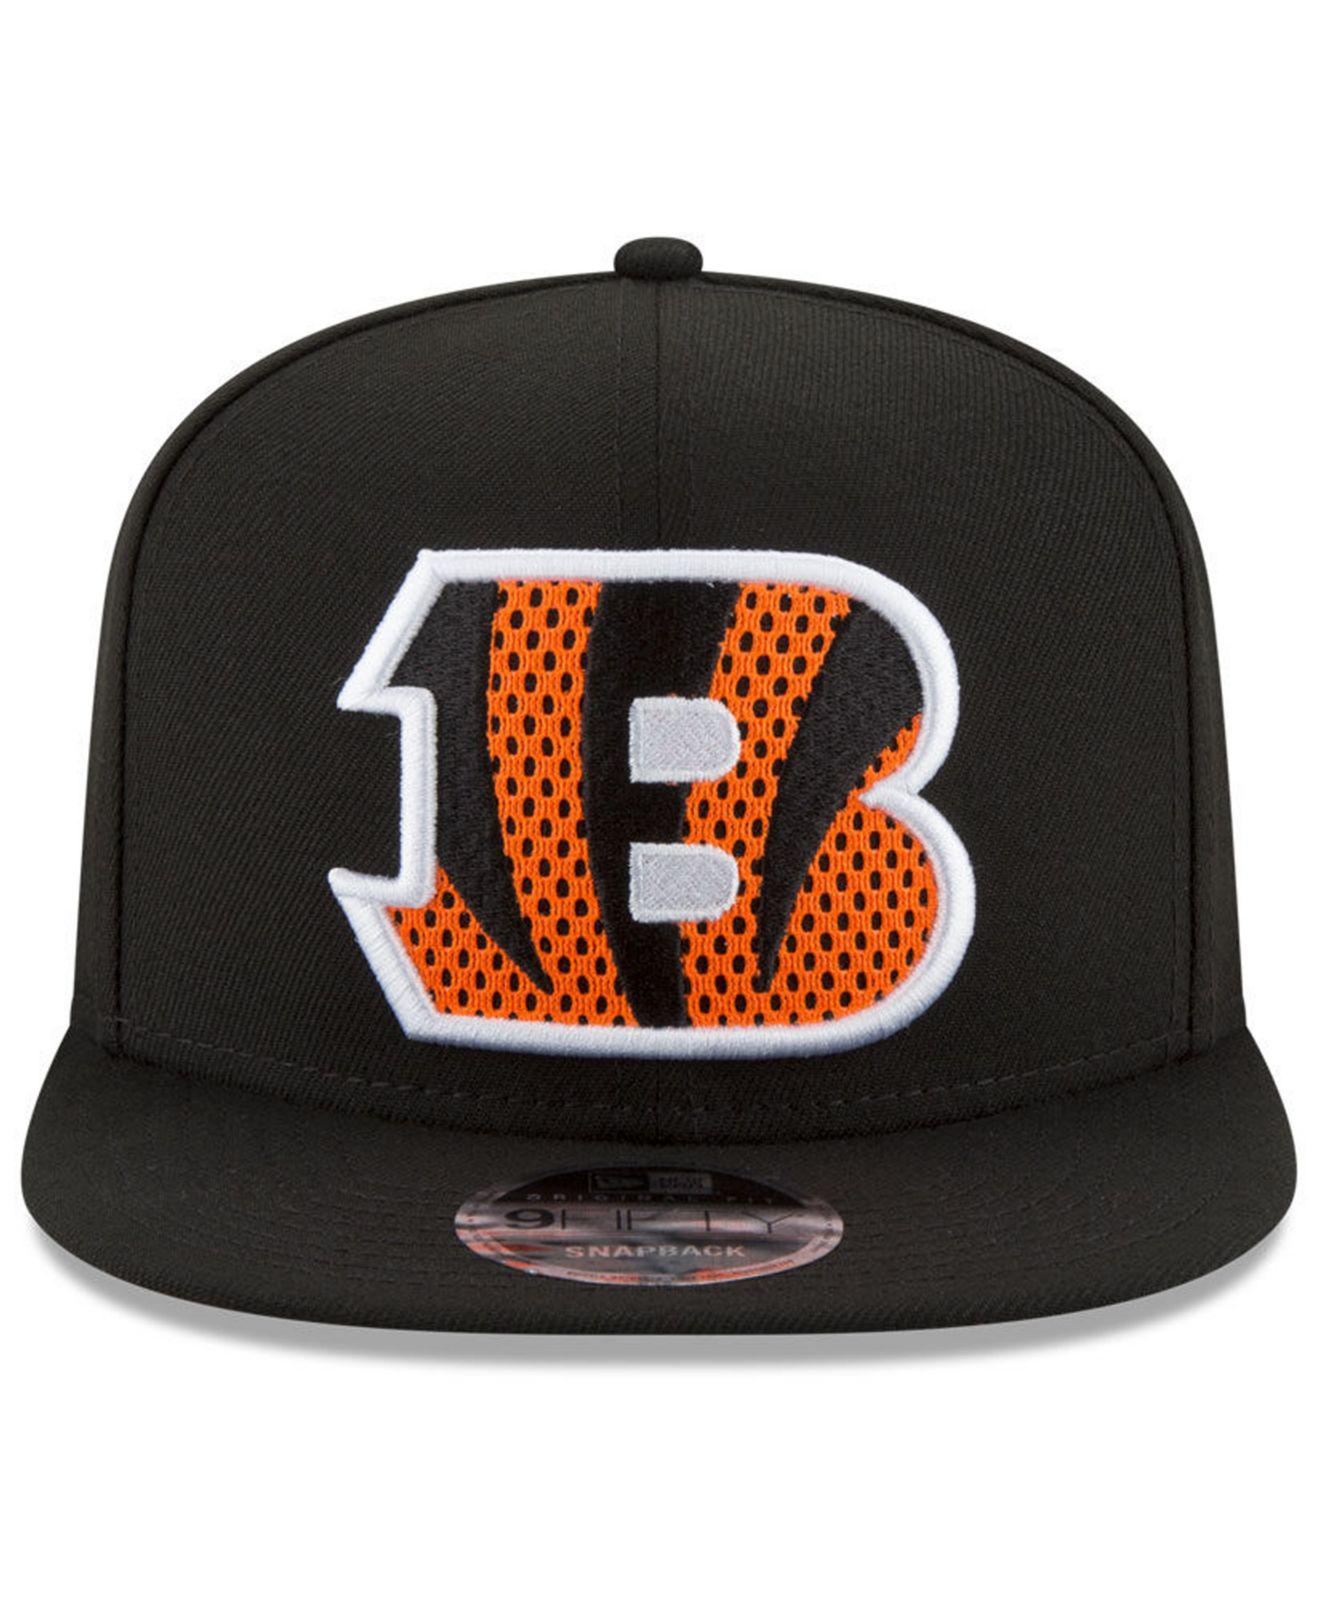 937b21e1d90 Lyst - Ktz Cincinnati Bengals Meshed Mix 9fifty Snapback Cap in Black for  Men